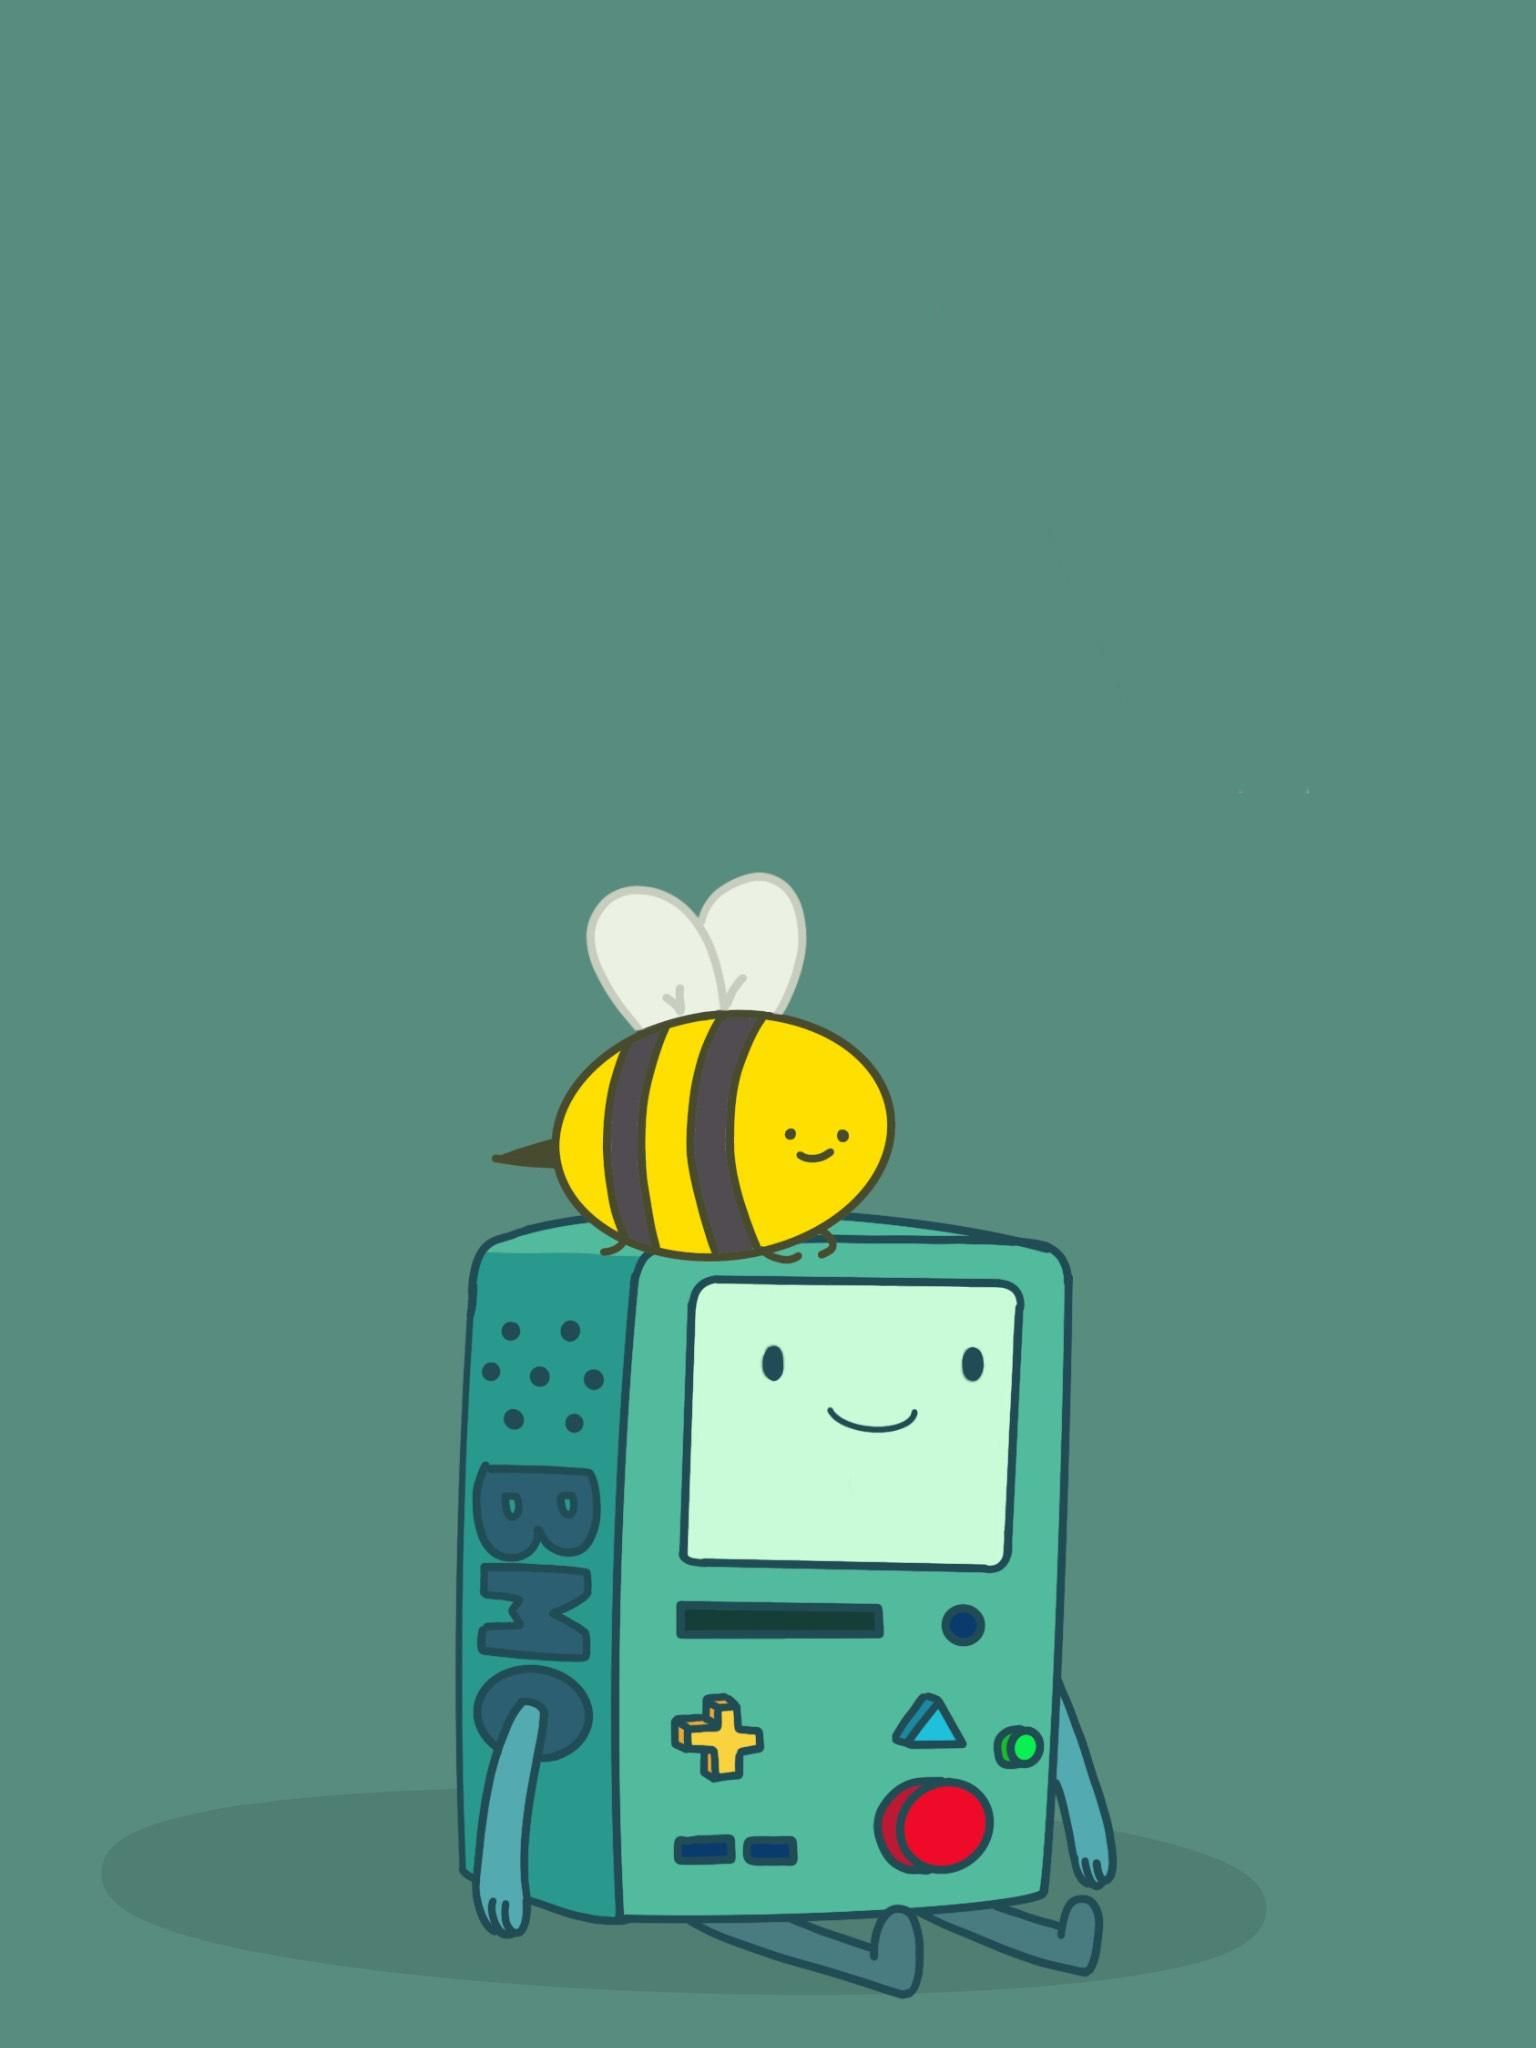 Wallpaper Also Made This One Adventuretime In 2020 Adventure Time Wallpaper Adventure Time Cartoon Adventure Time Characters